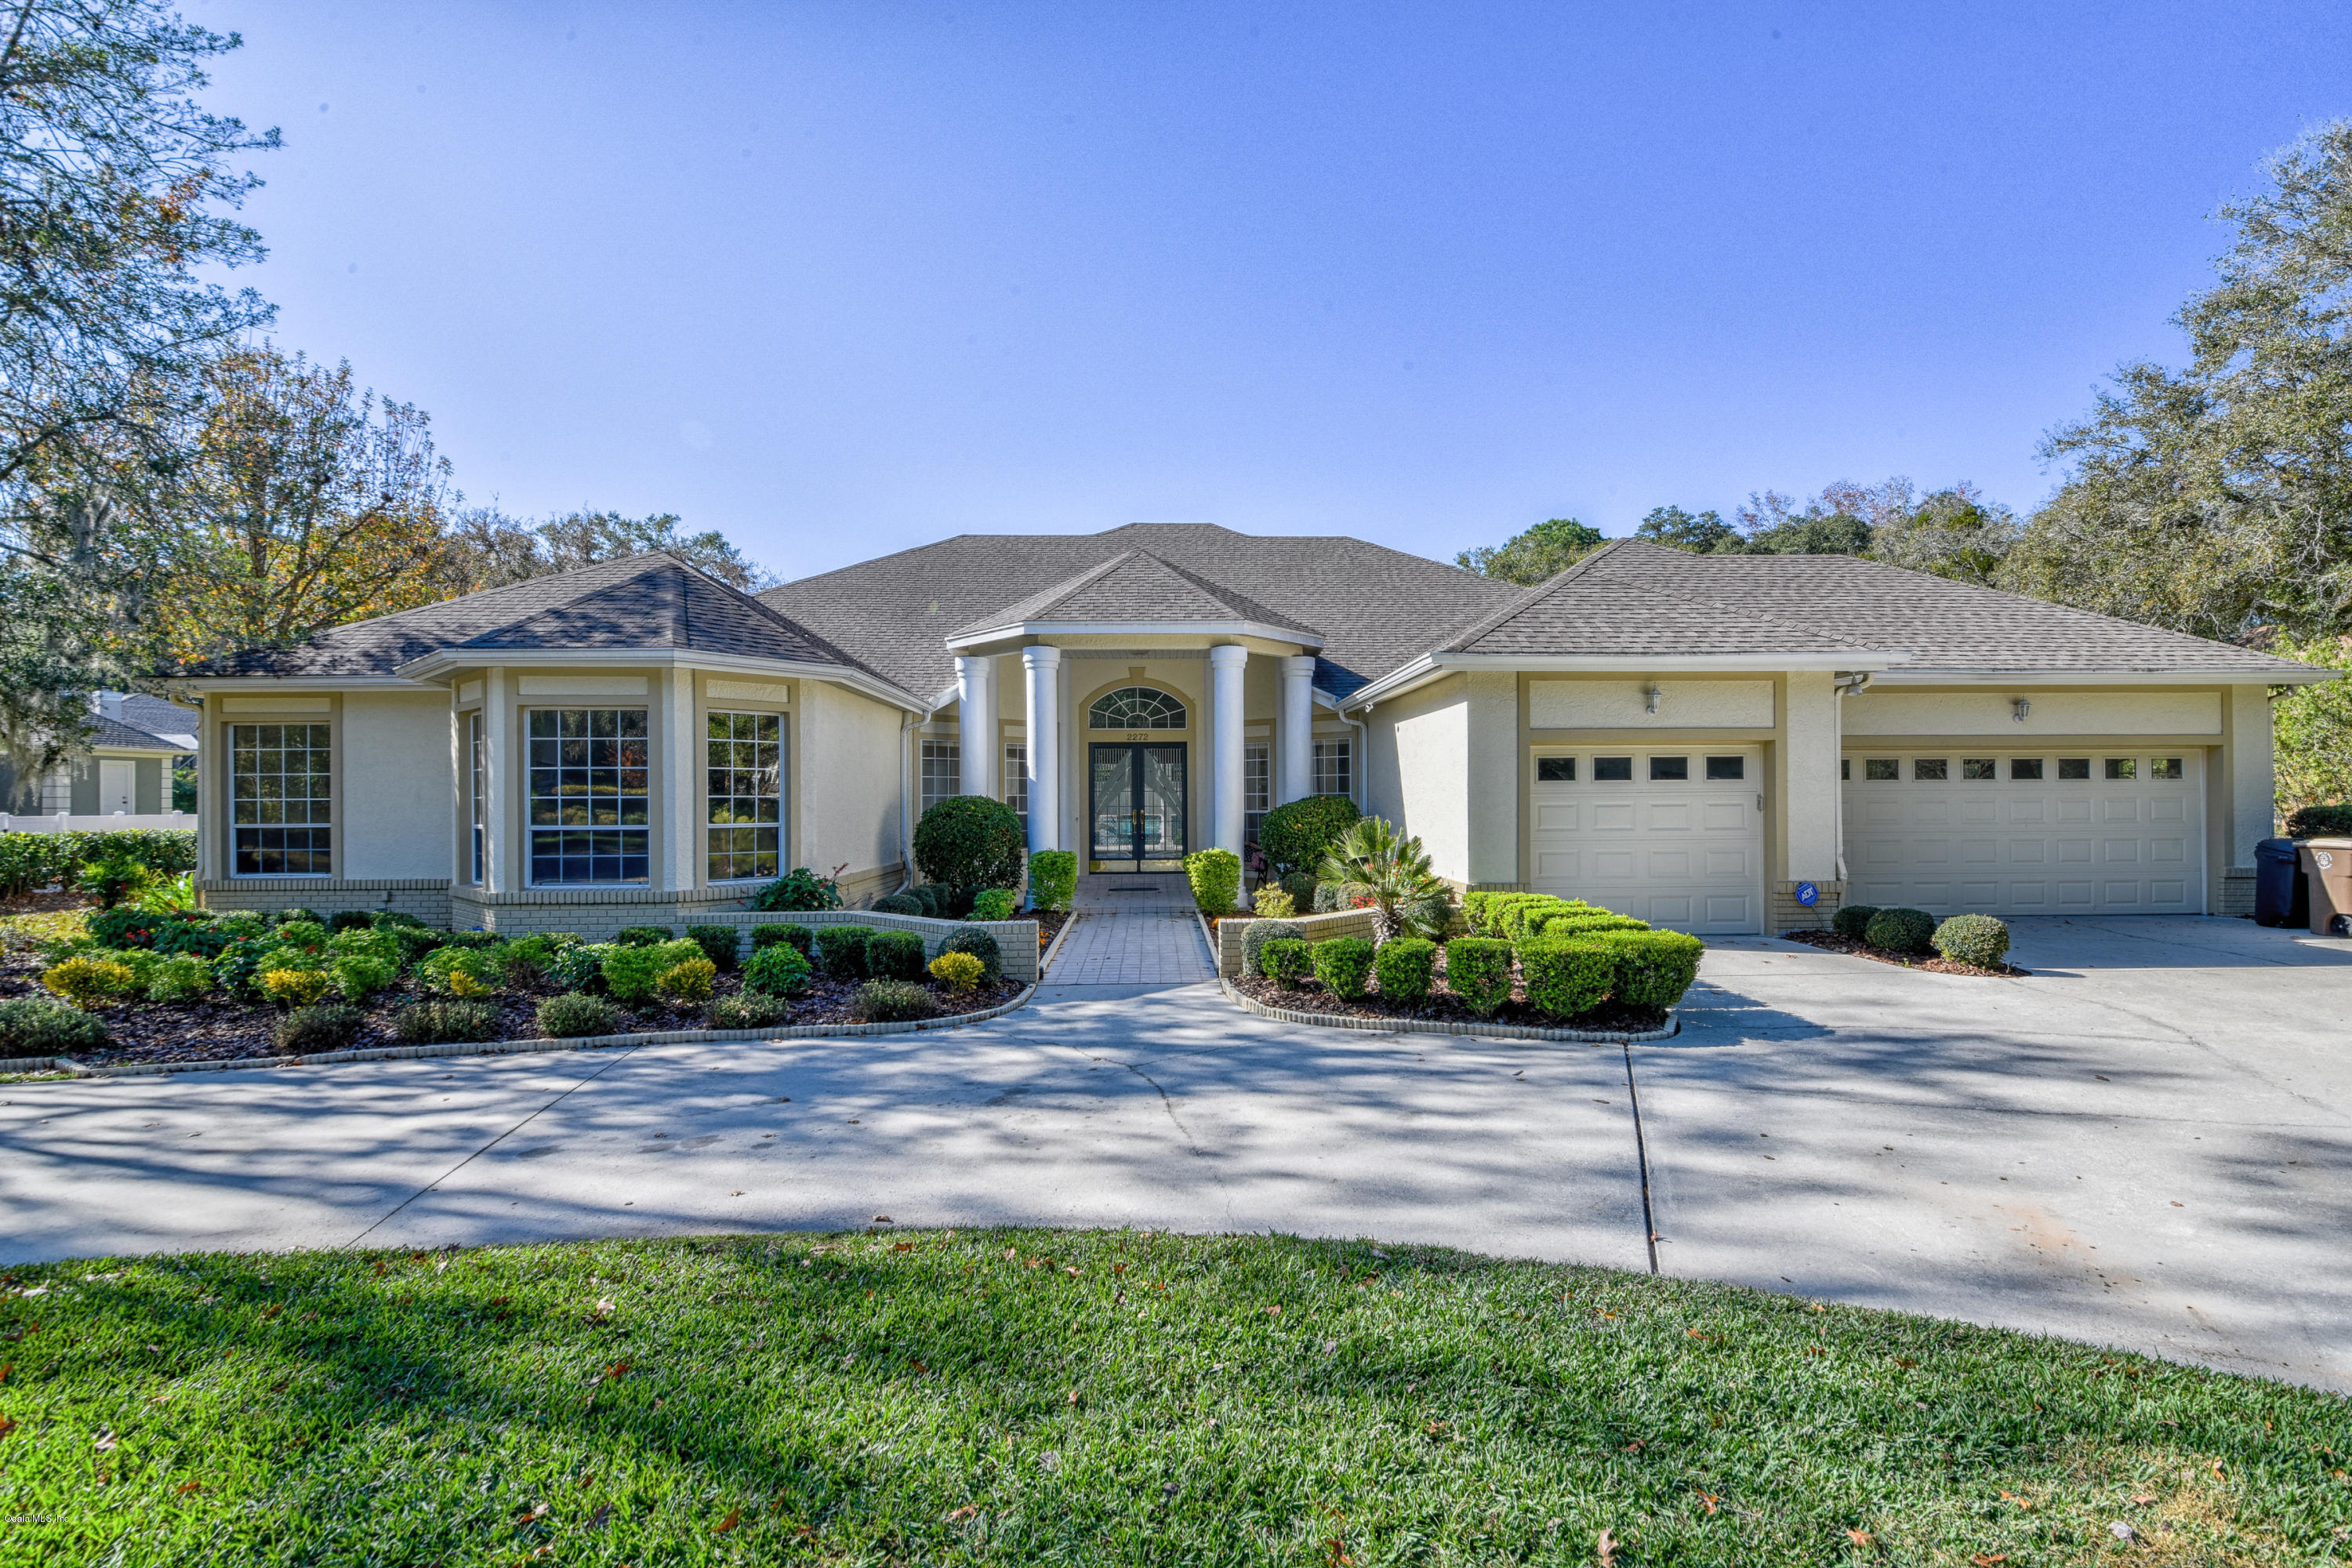 2272 LAUREL RUN DRIVE, OCALA, FL 34471